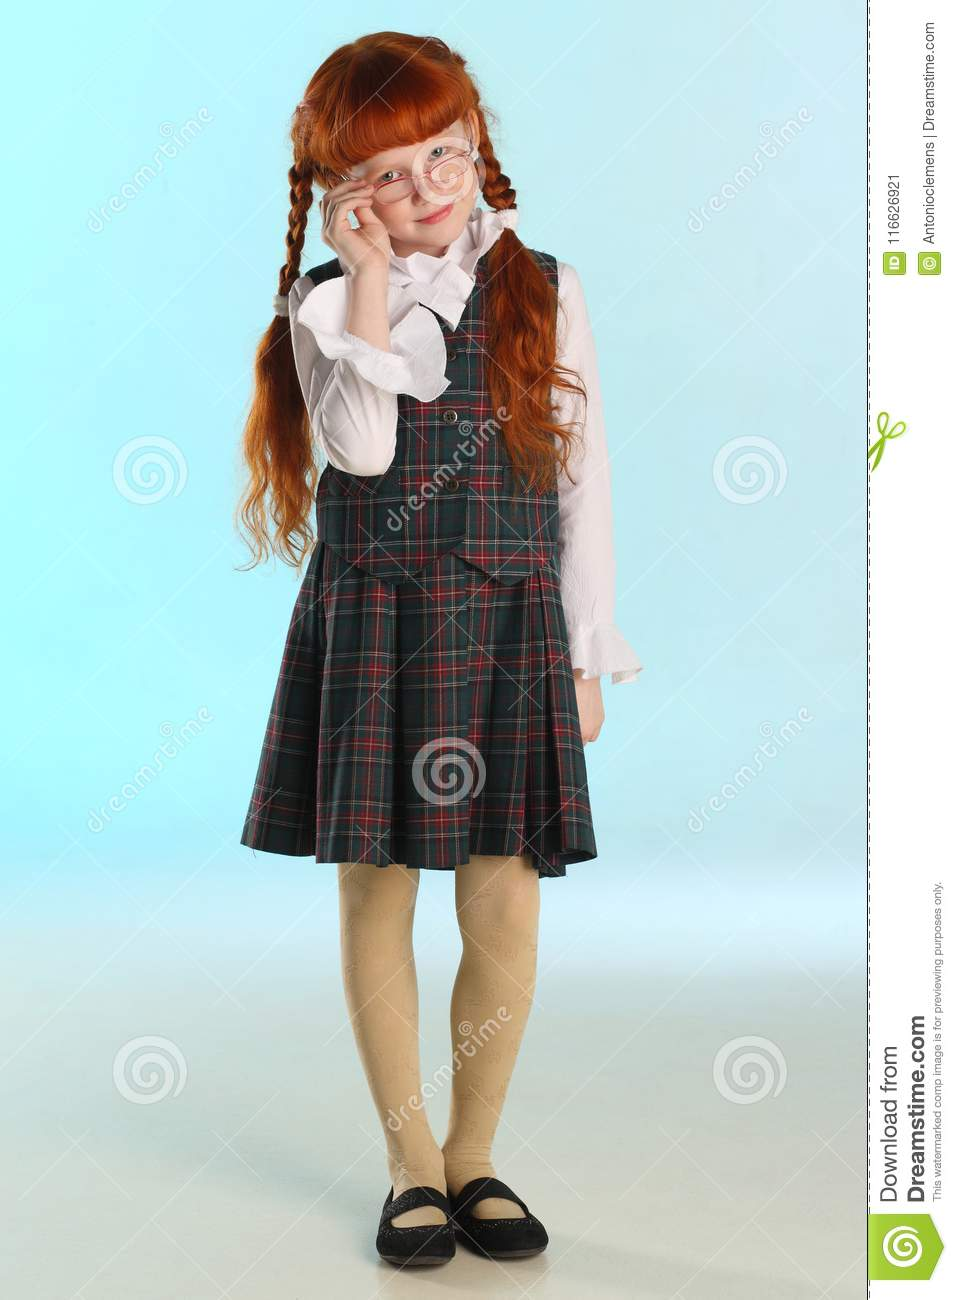 Good topic redhead pigtails young teen girl remarkable, useful